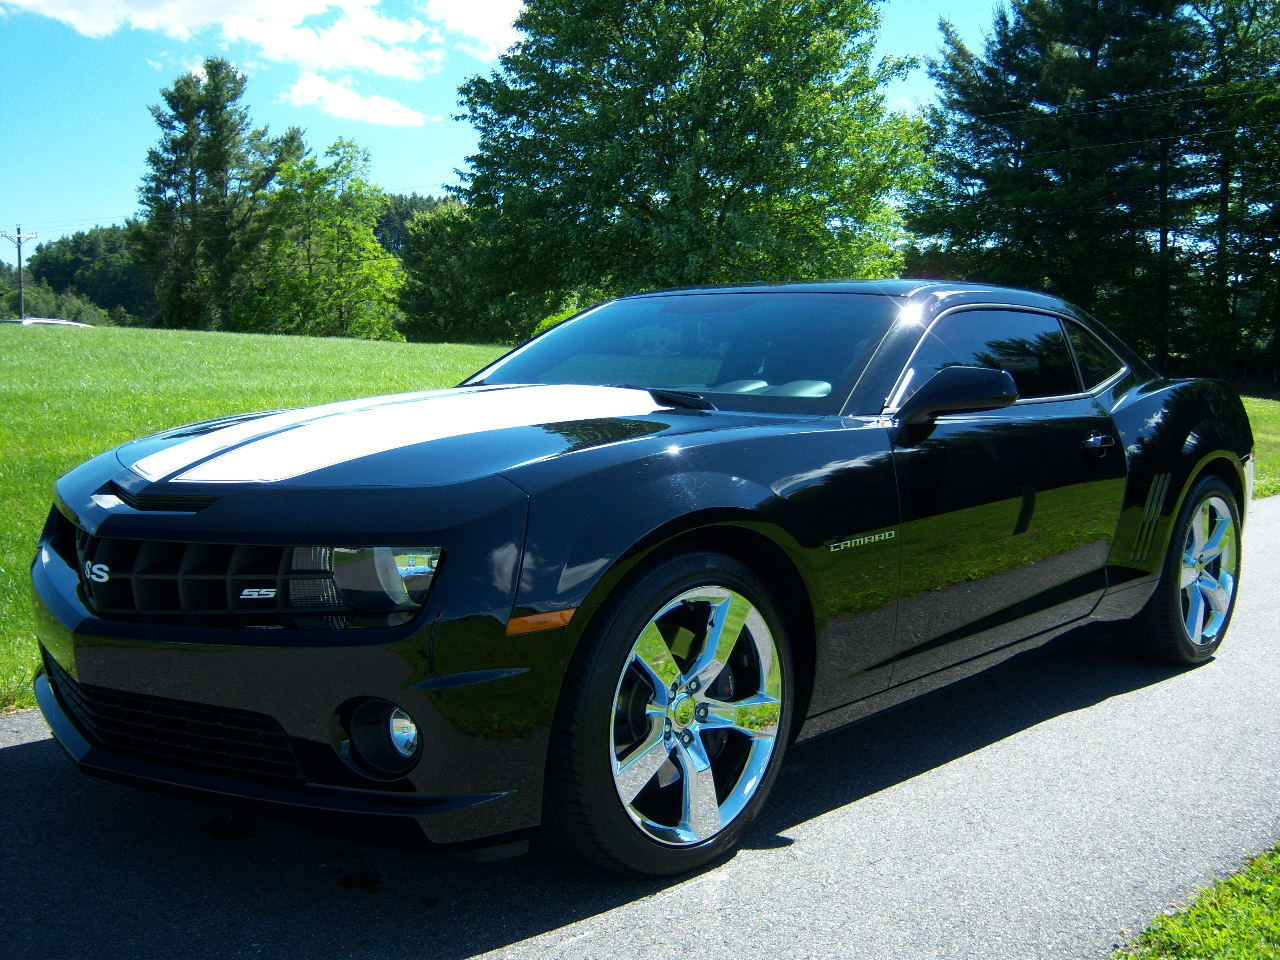 chevy camaro for sale - HD1280×960